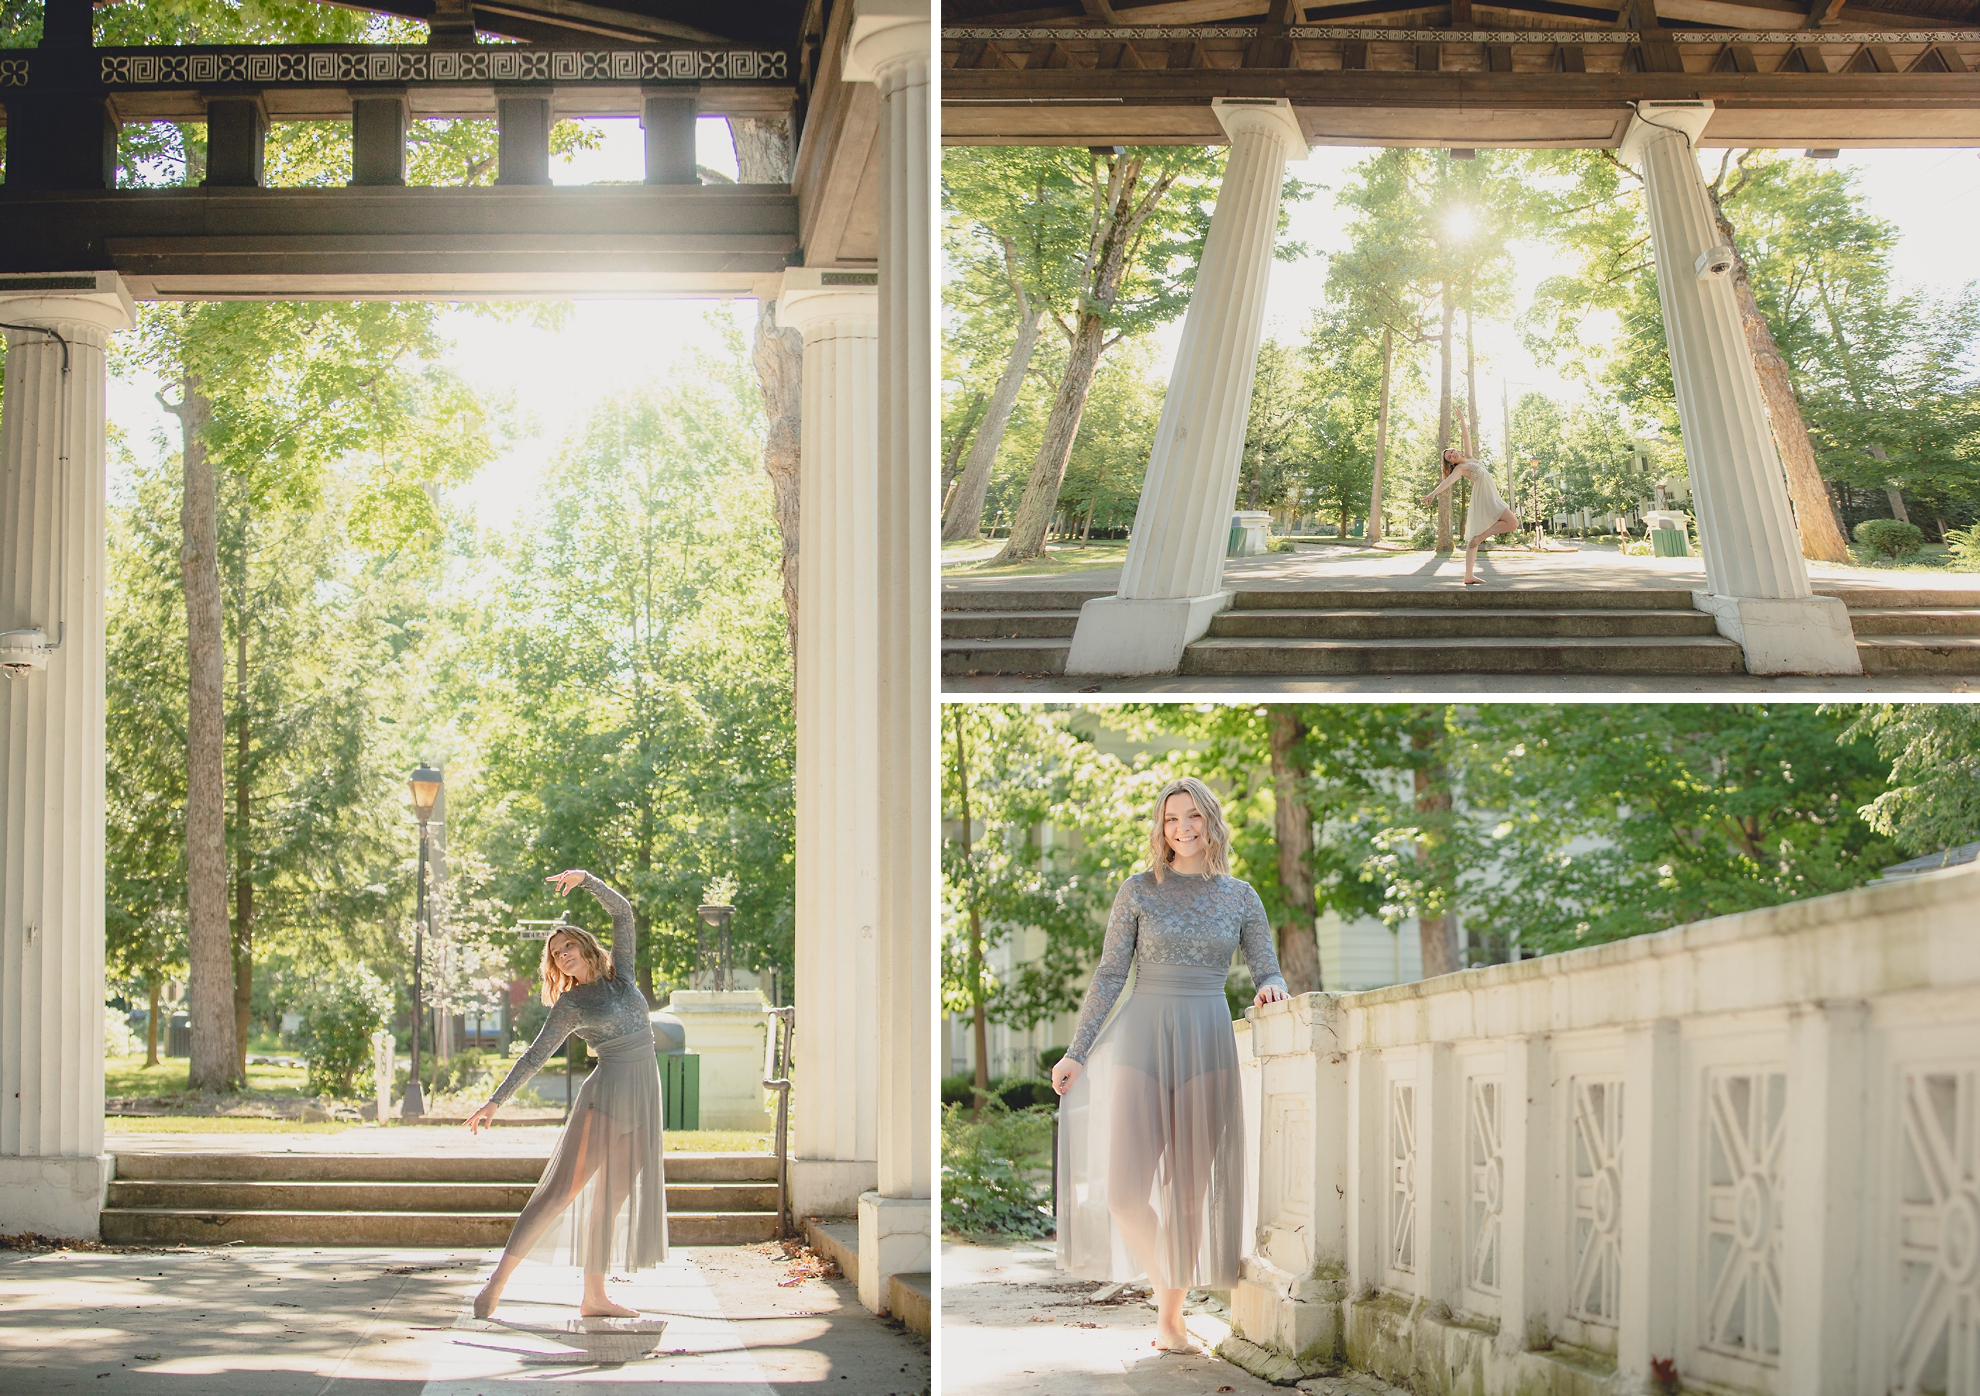 maple grove high school student dances in Hall of Philosophy during senior portrait photography session at Chautauqua Institution